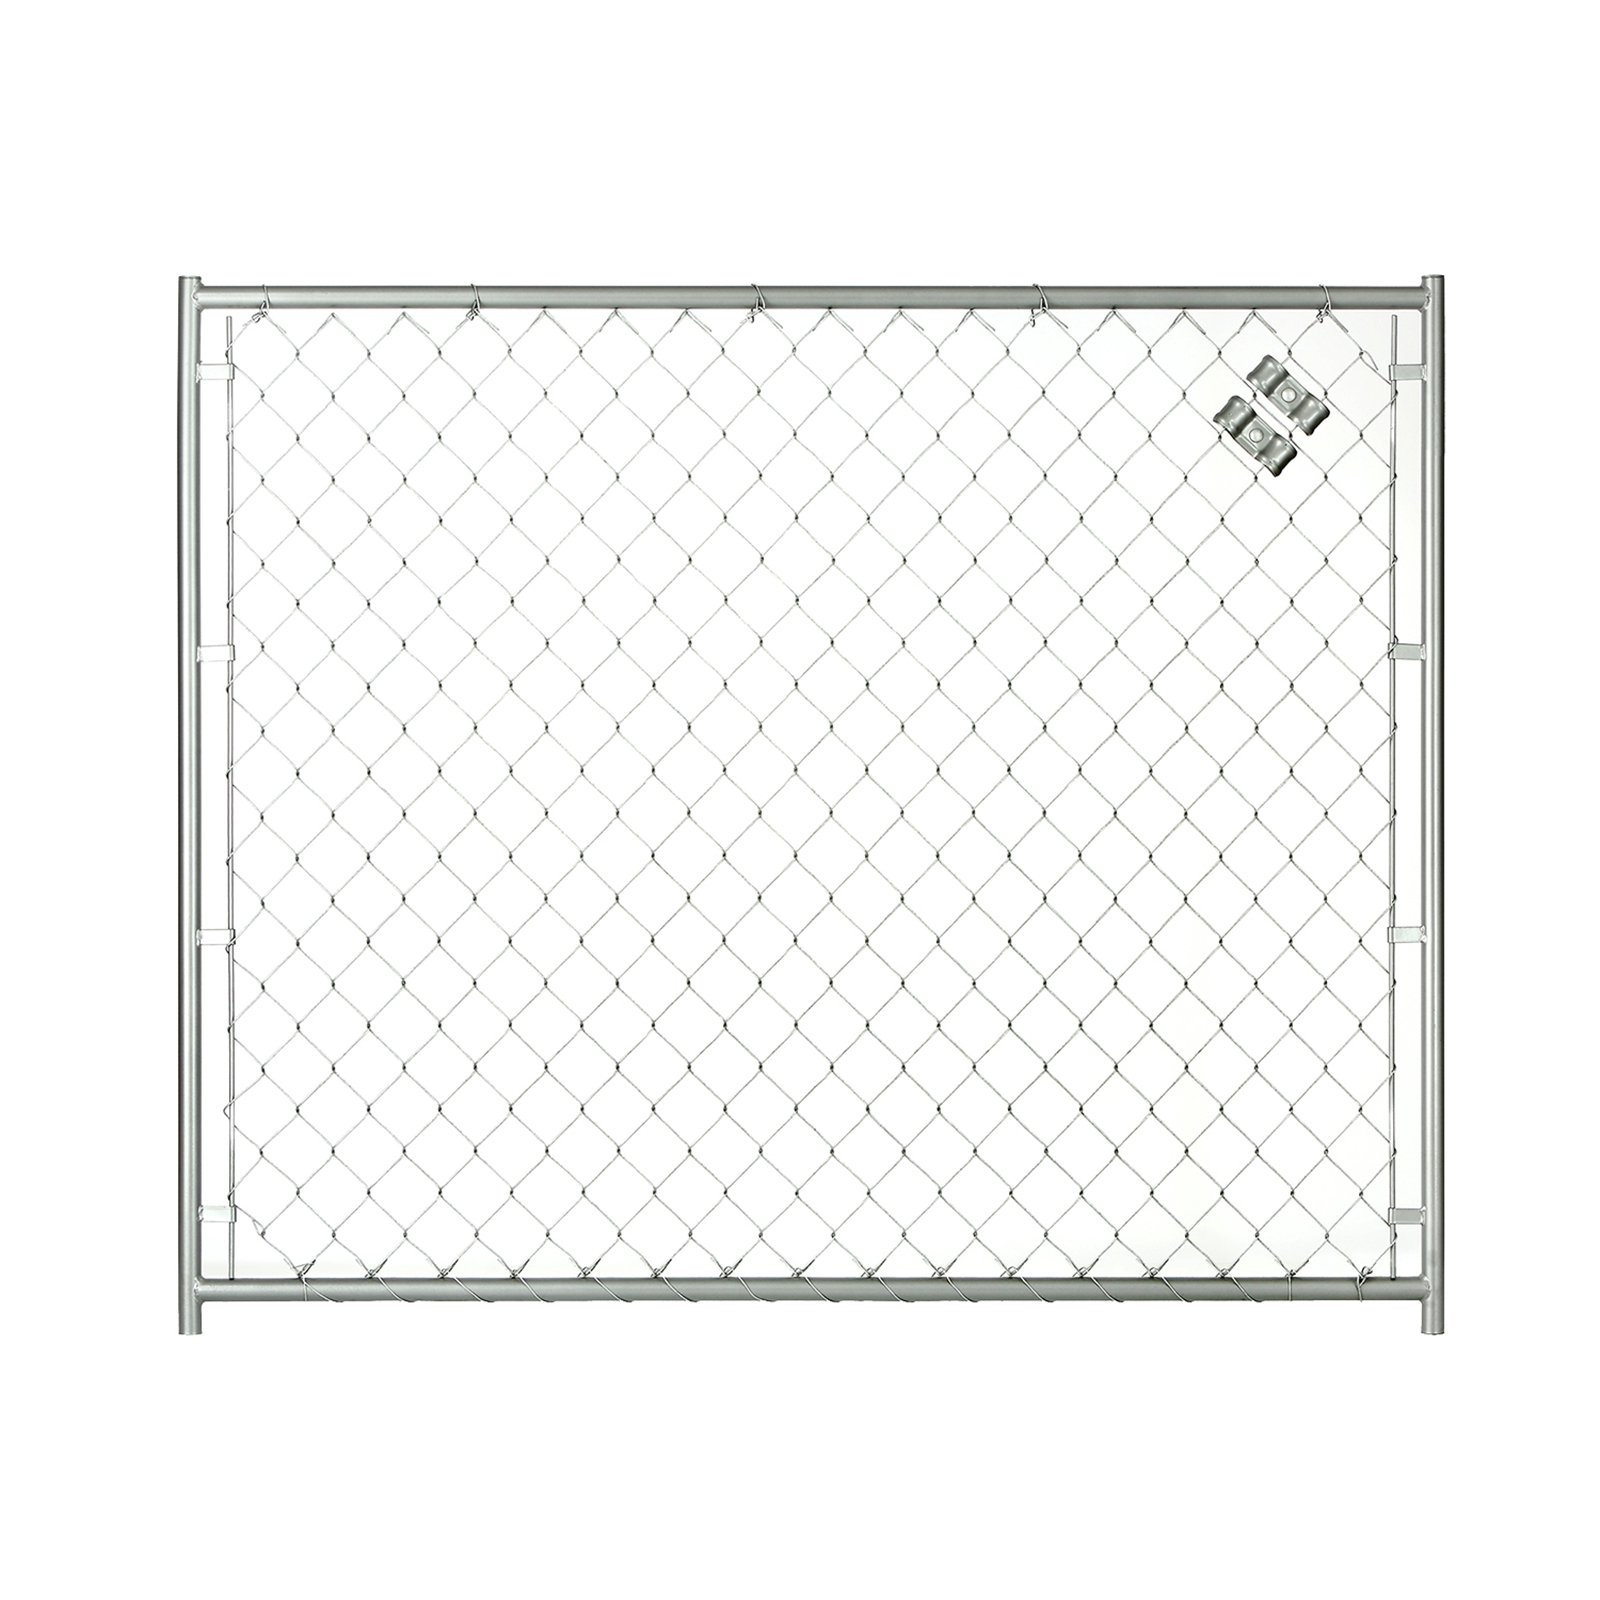 Lucky Dog 5W x 4H ft. Chain Link Modular Panel